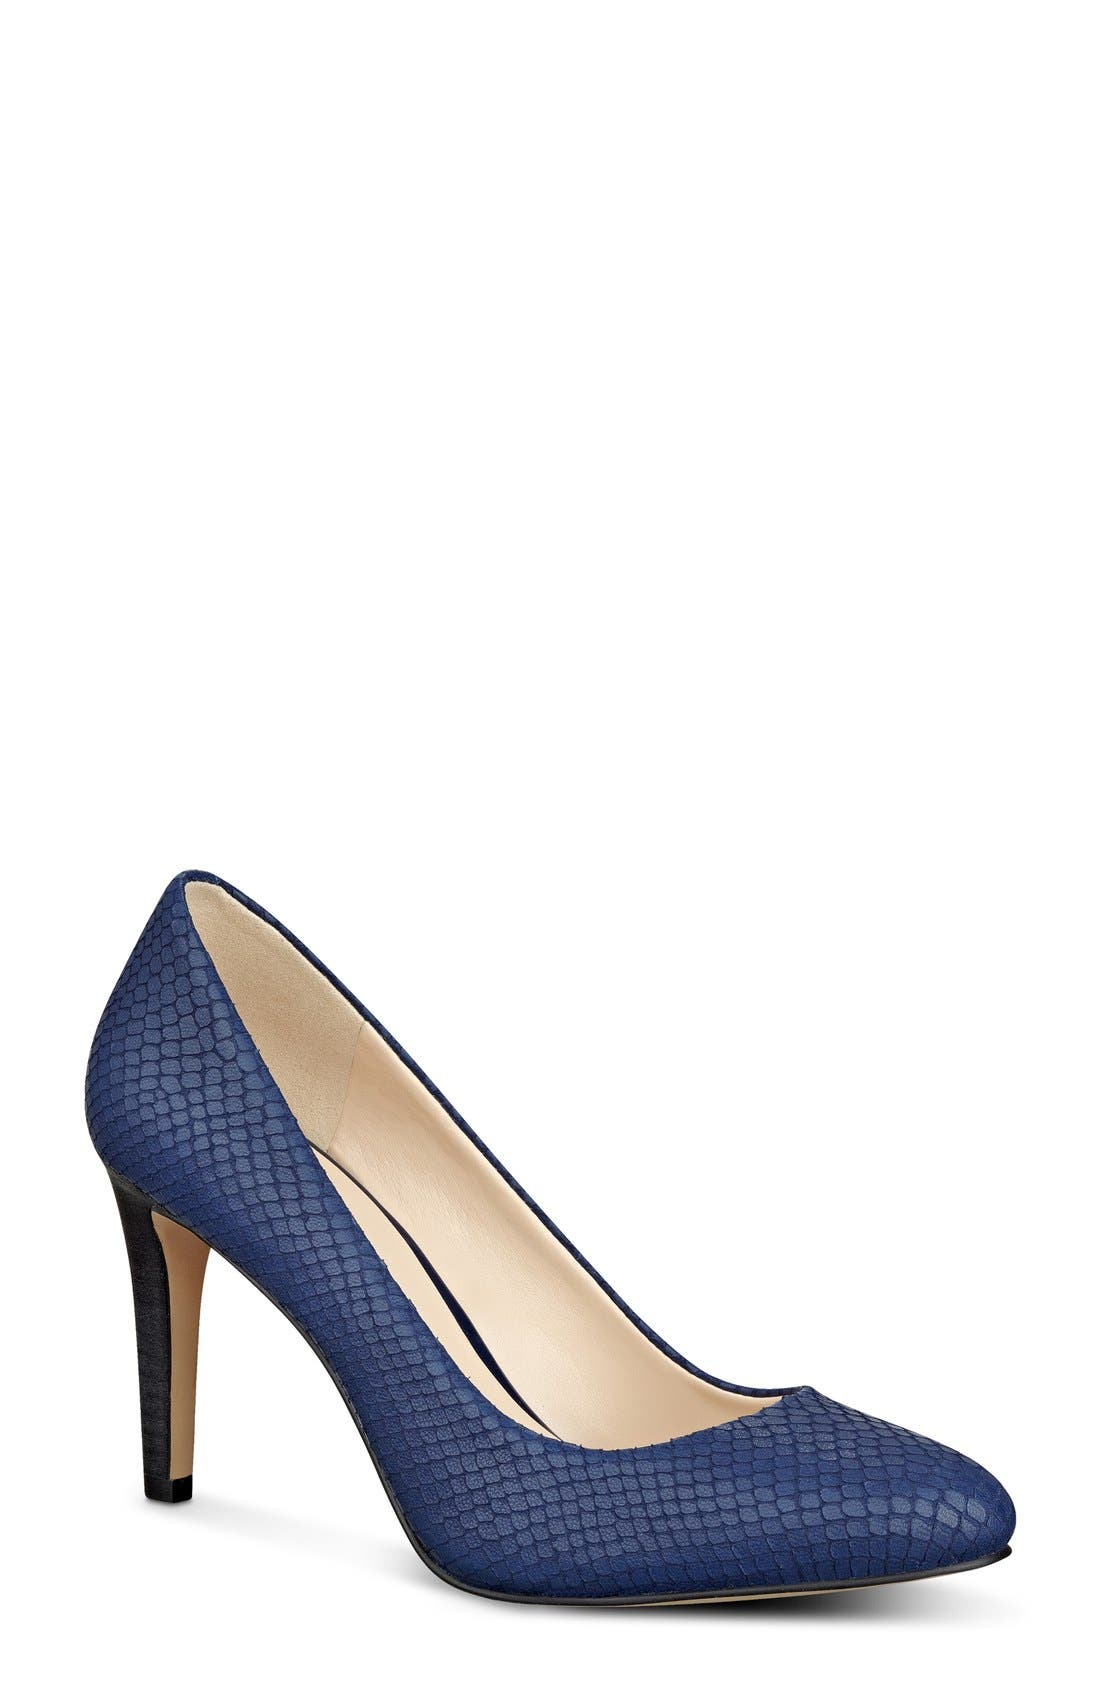 Main Image - Nine West 'Handjive' Almond Toe Pump (Women)